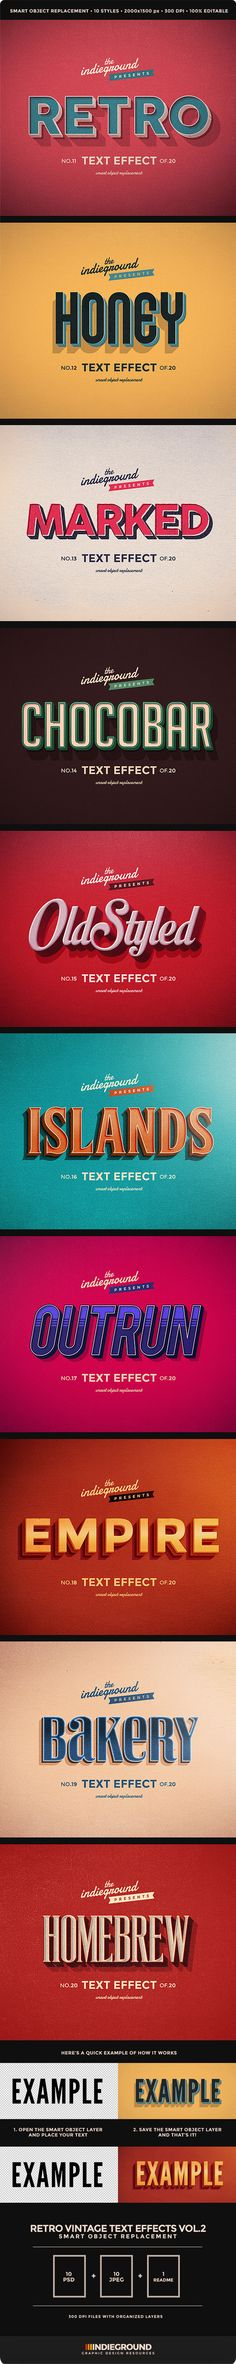 Title Ideas  Retro Vintage Text Effects Vol. 2 - Text Effects Actions $5